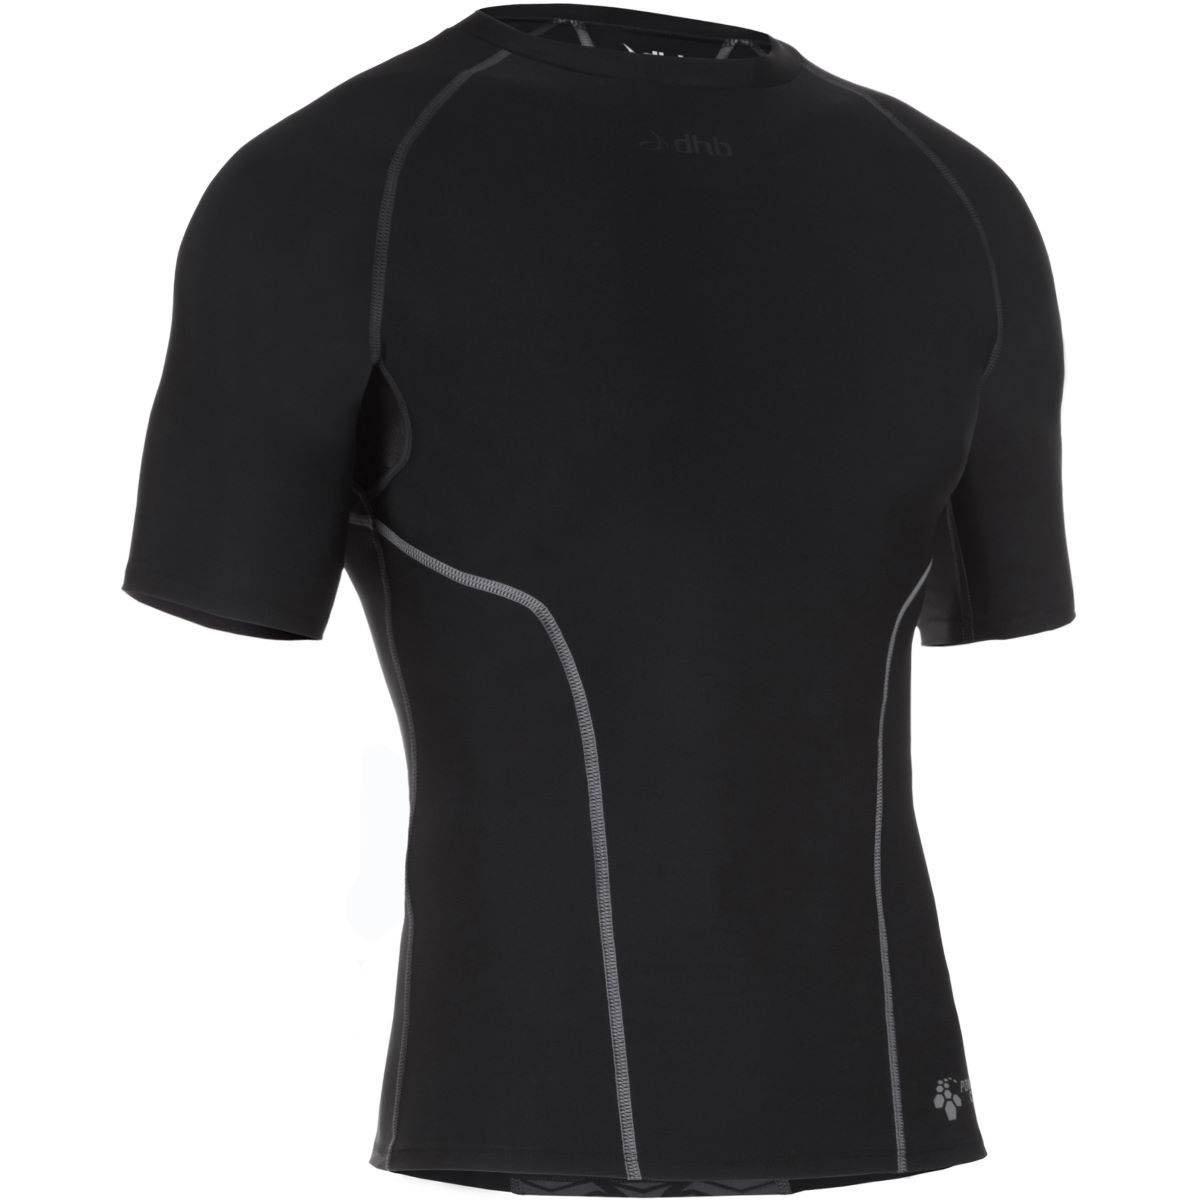 dhb Powerguard Compression Short Sleeve Top